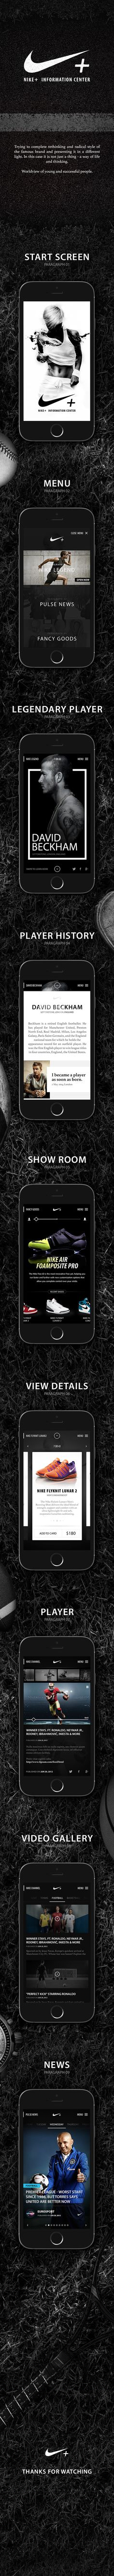 Nike. New Look & Concept on Behance #app #web #design